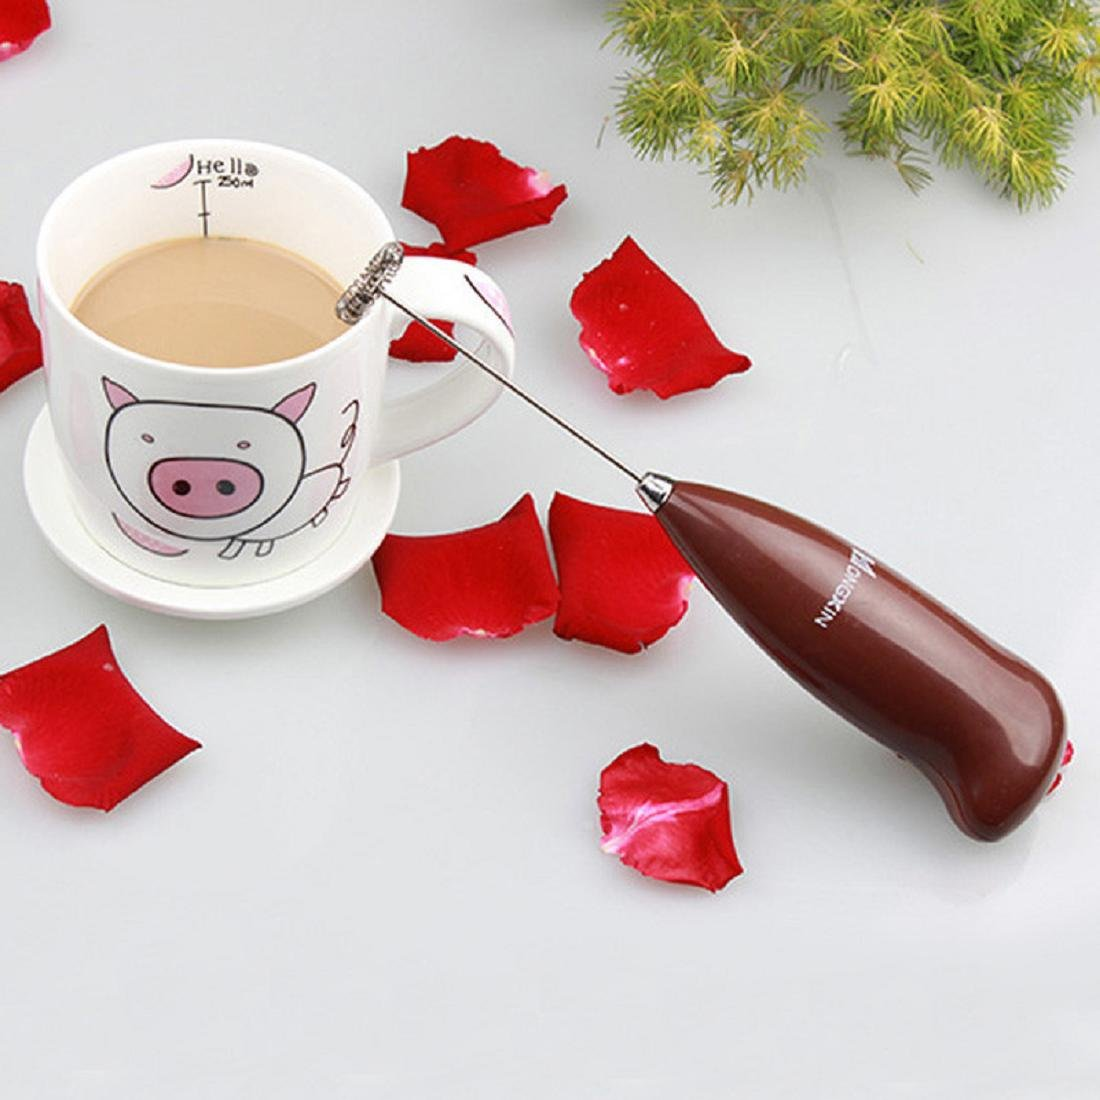 Coffee Coromose Fashion Hot Drinks Milk Frother Foamer Whisk Mixer Stirrer Egg Beater